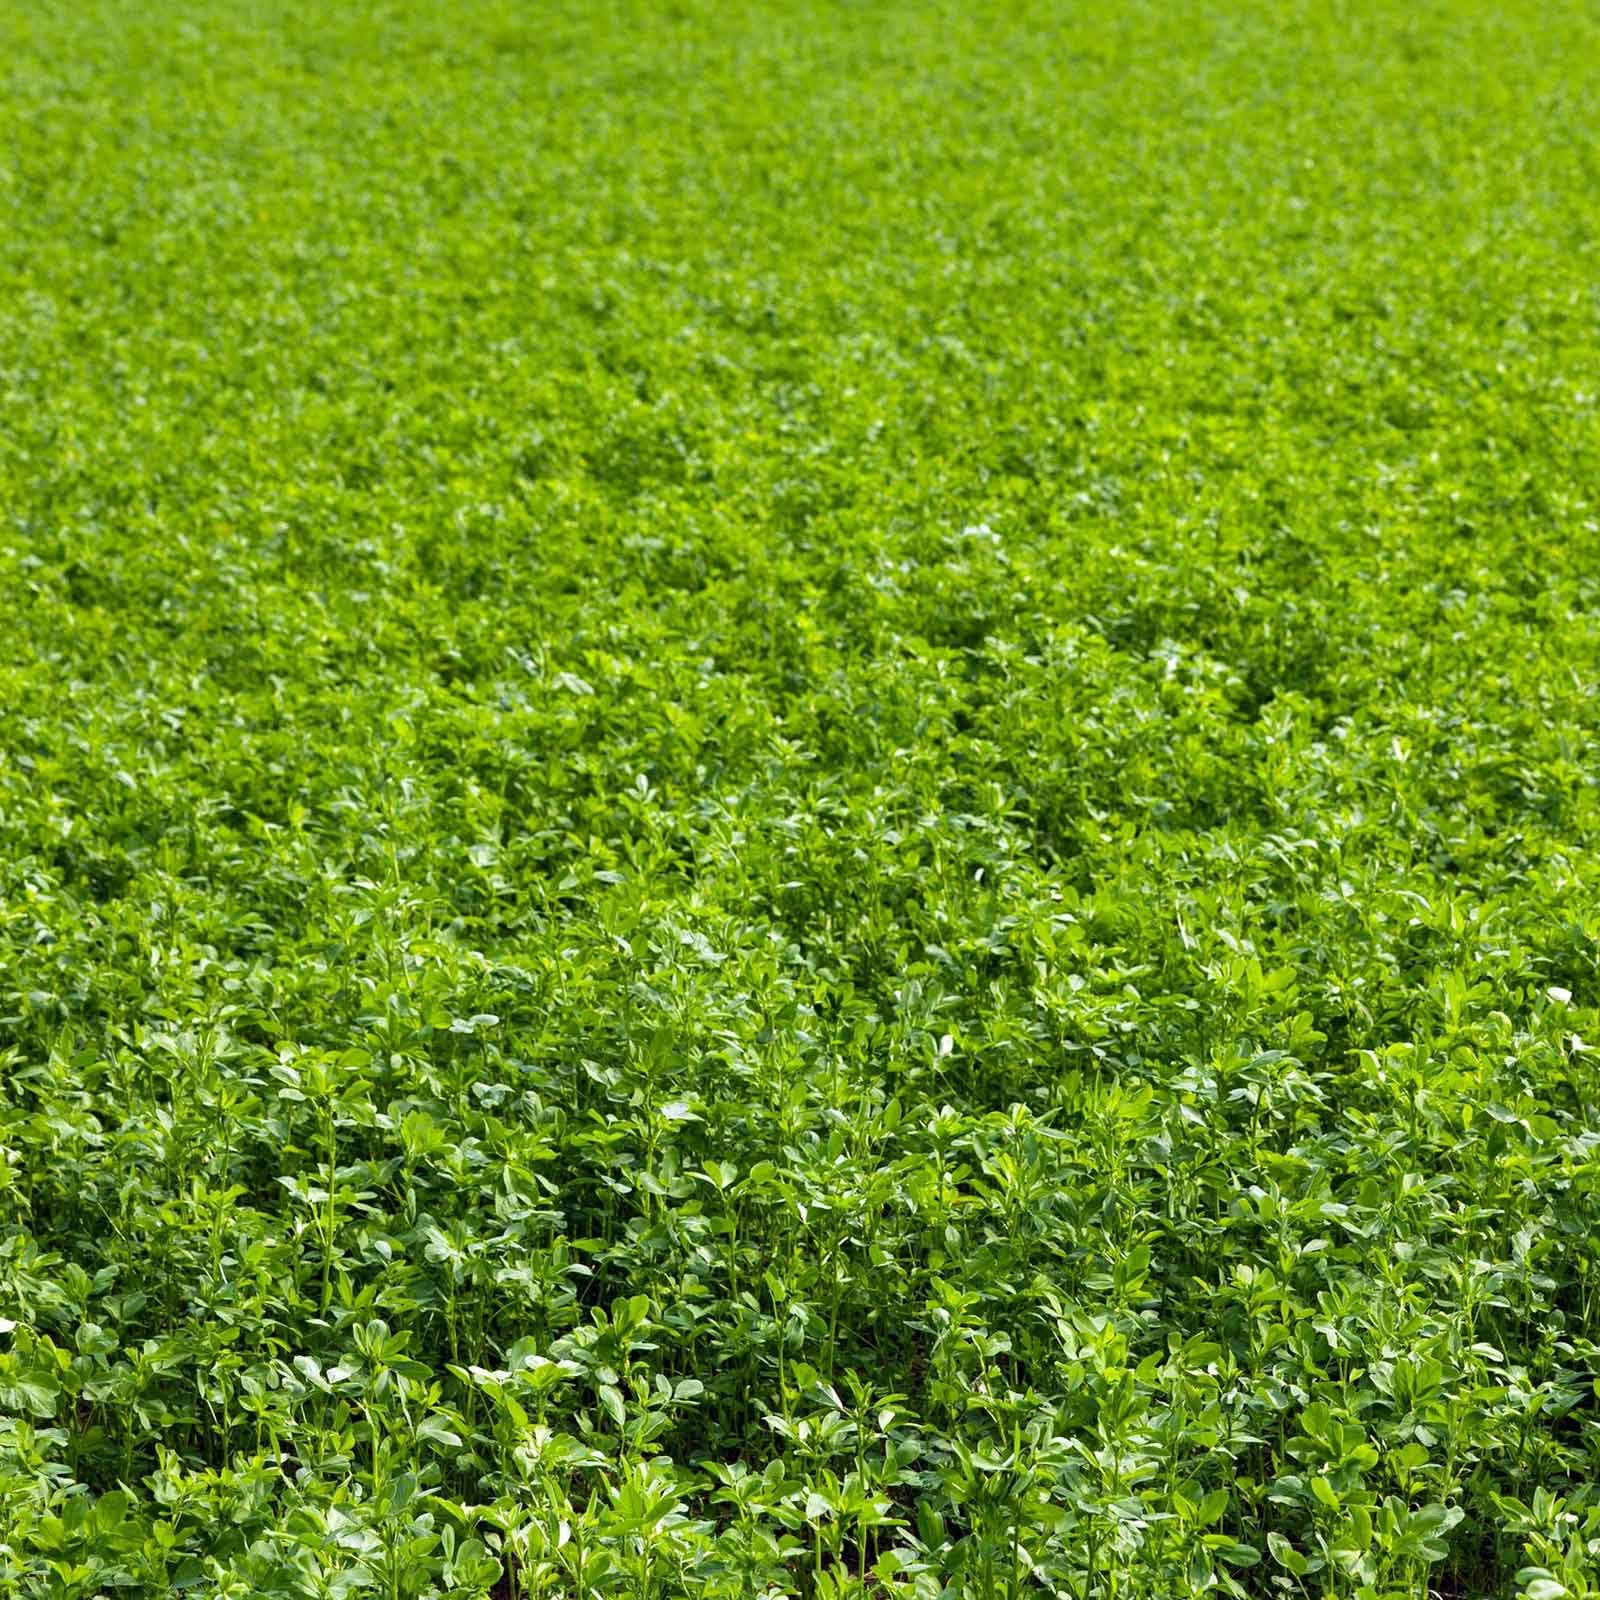 Non-GMO Alfalfa Seeds - 25 Lbs - High Germination, Conventional Seed - Gardening, Cover Crop, Field Growing, Food Storage & More by Mountain Valley Seed Company